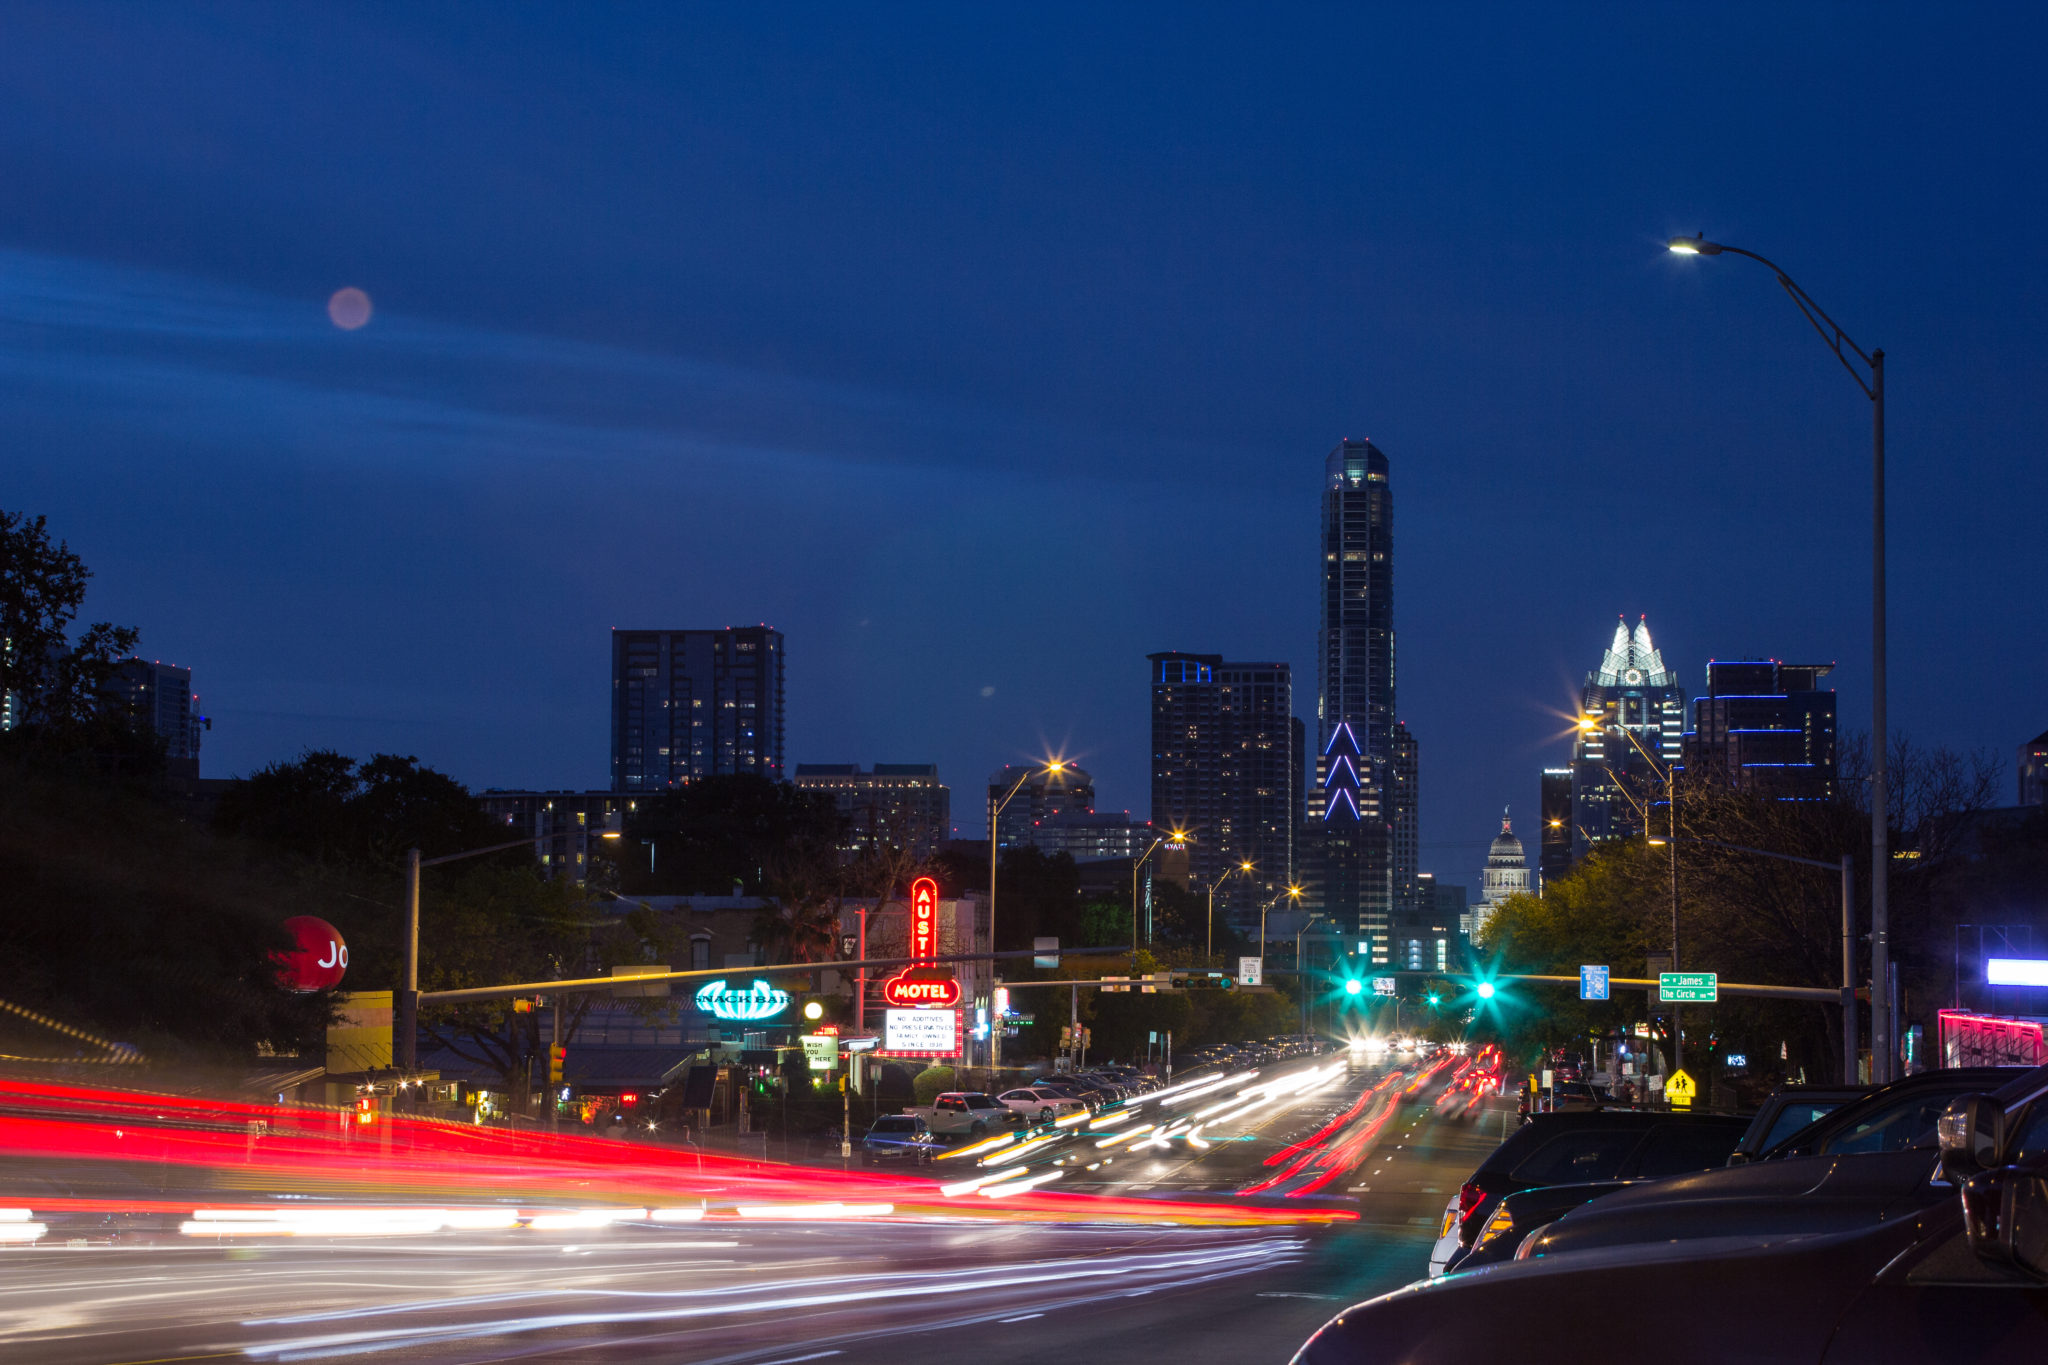 Night photo of South Congress Street in Austin, Texas with red and yellow car lights in the foreground because of the long exposure